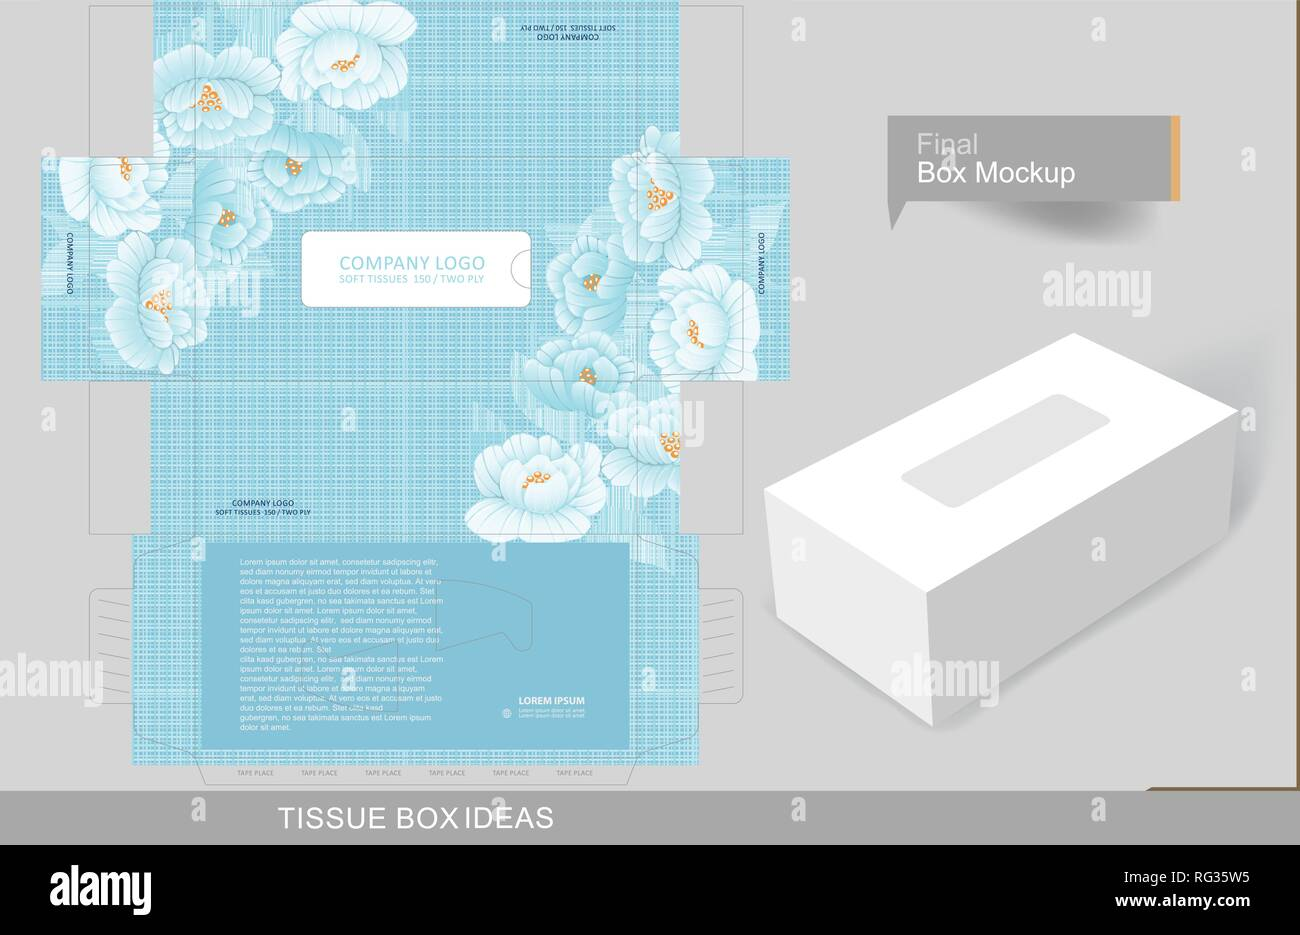 It's just a picture of Printable Box Template pertaining to money box